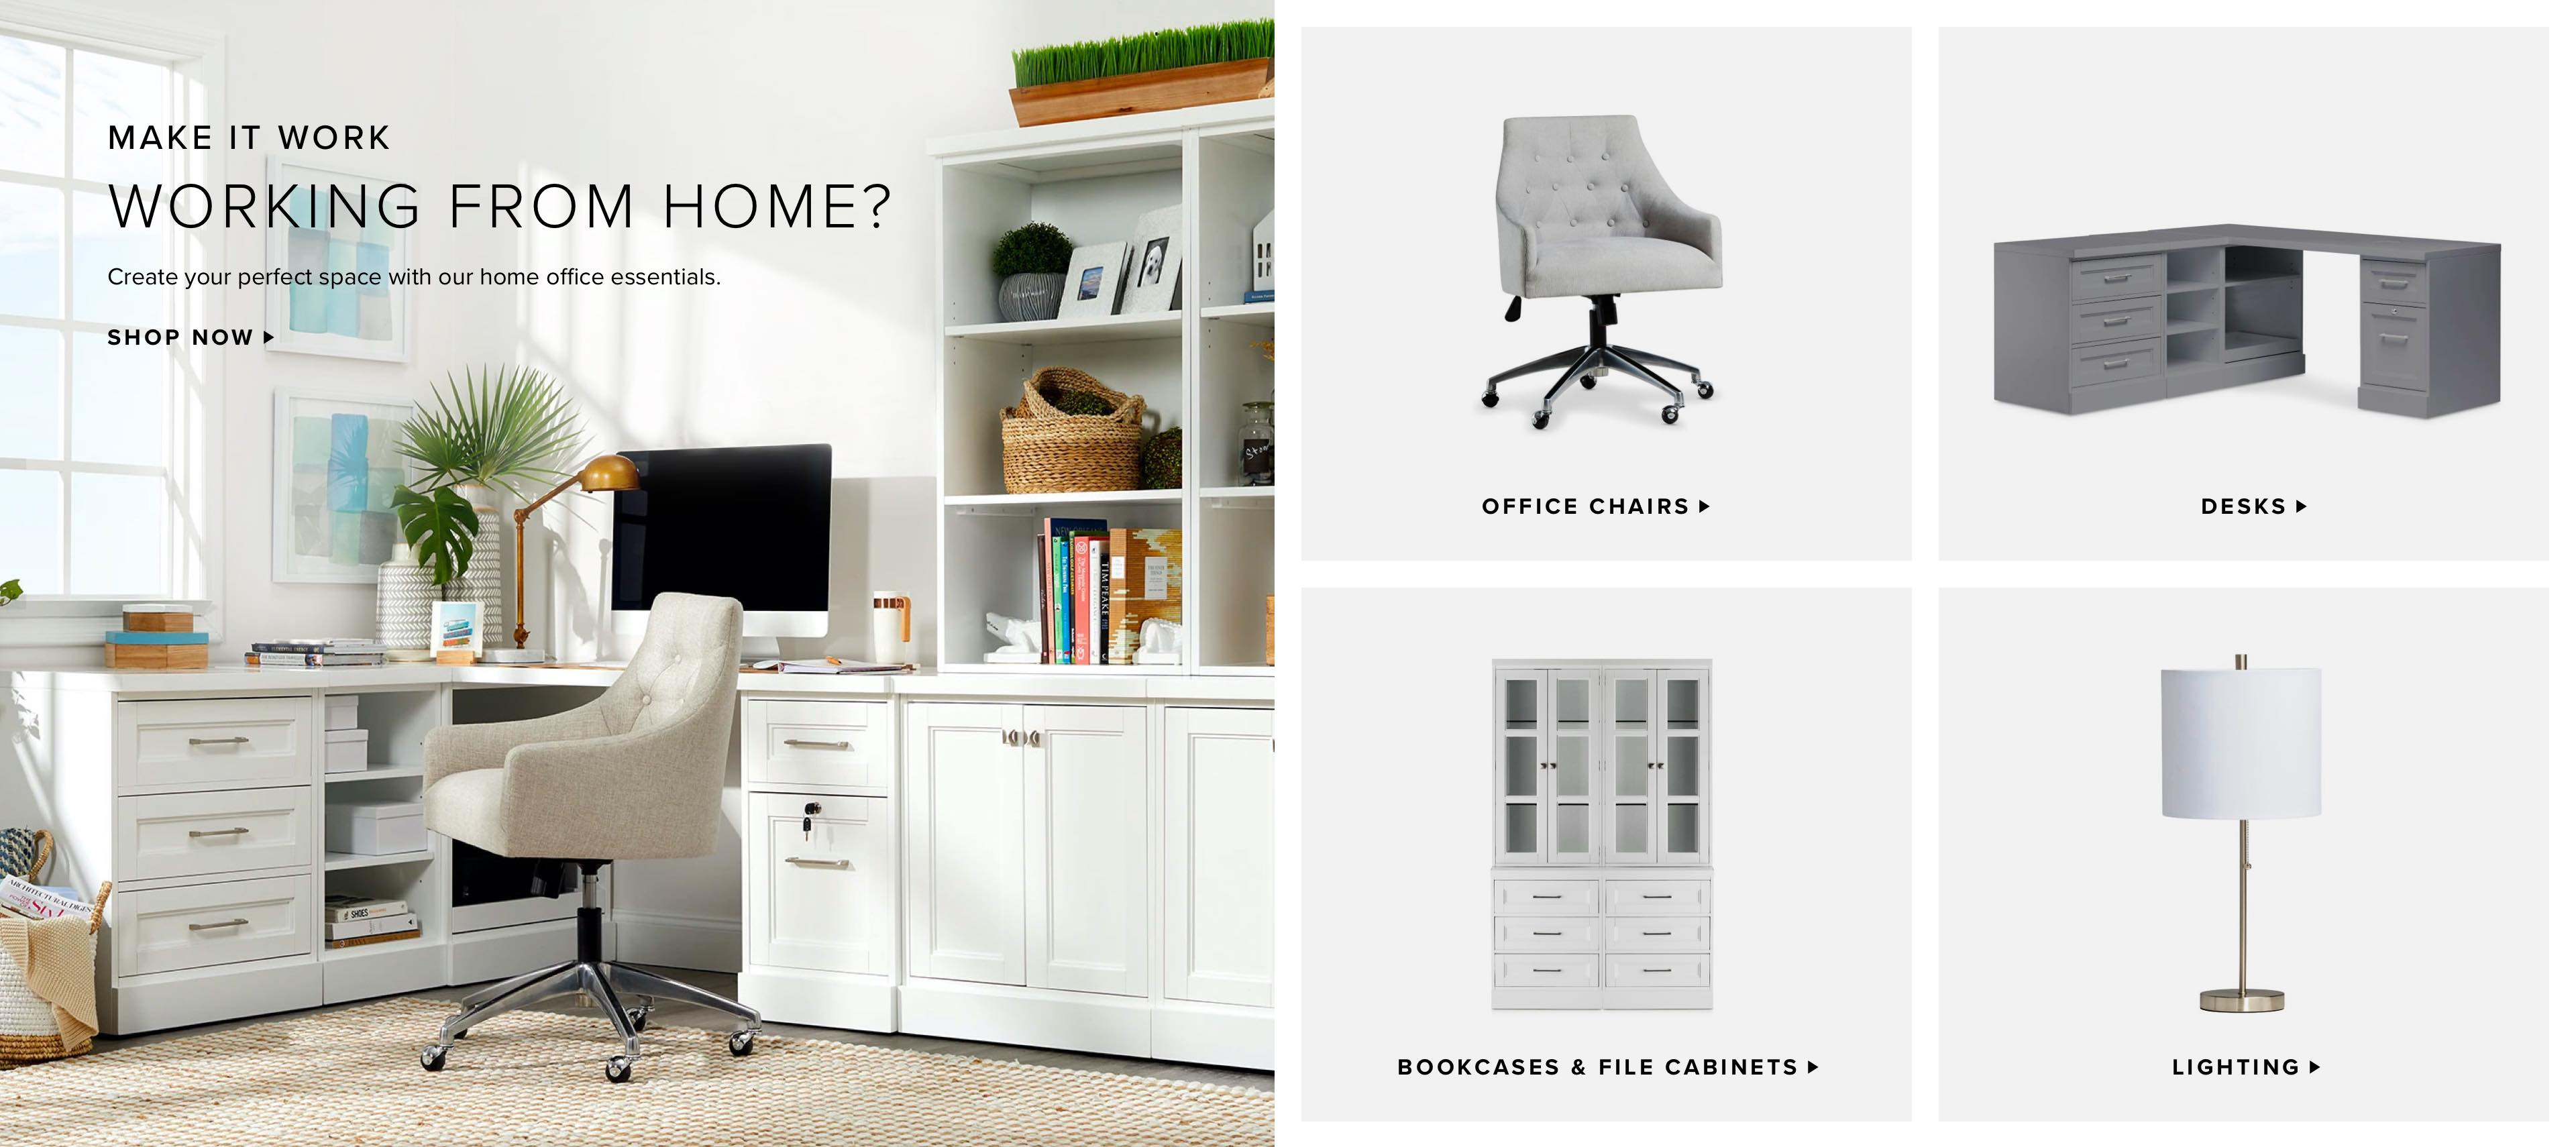 Home Office. Working from home? Create your perfect space with our home office essentials. Shop Now.